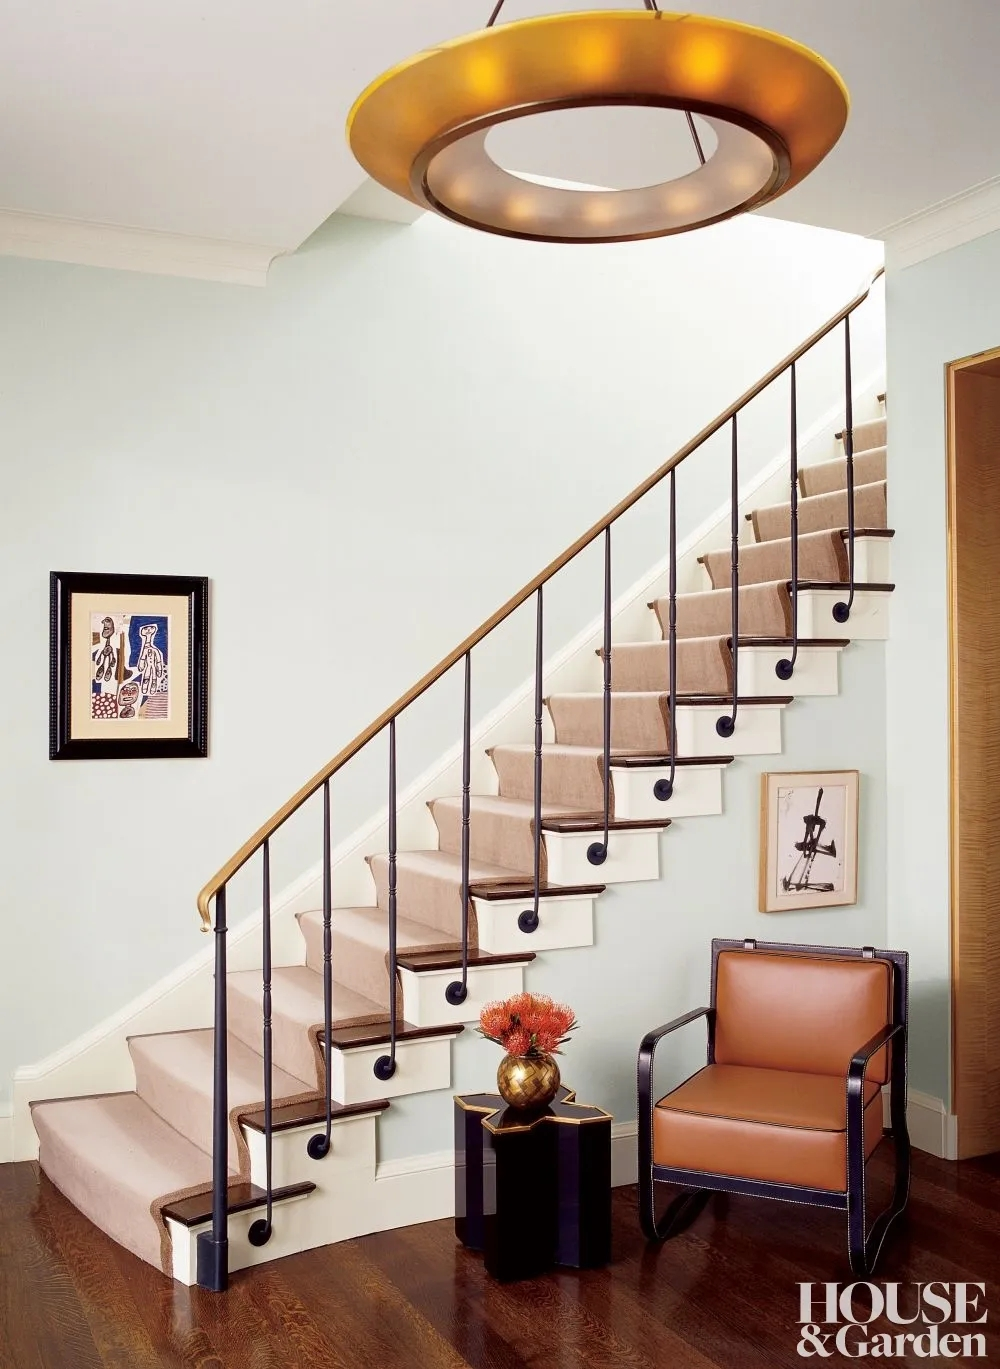 Types Of Stairs Explained Architectural Digest | Inside Home Stairs Design | Stunning | Amazing | Tiny | Normal | Staircase Design